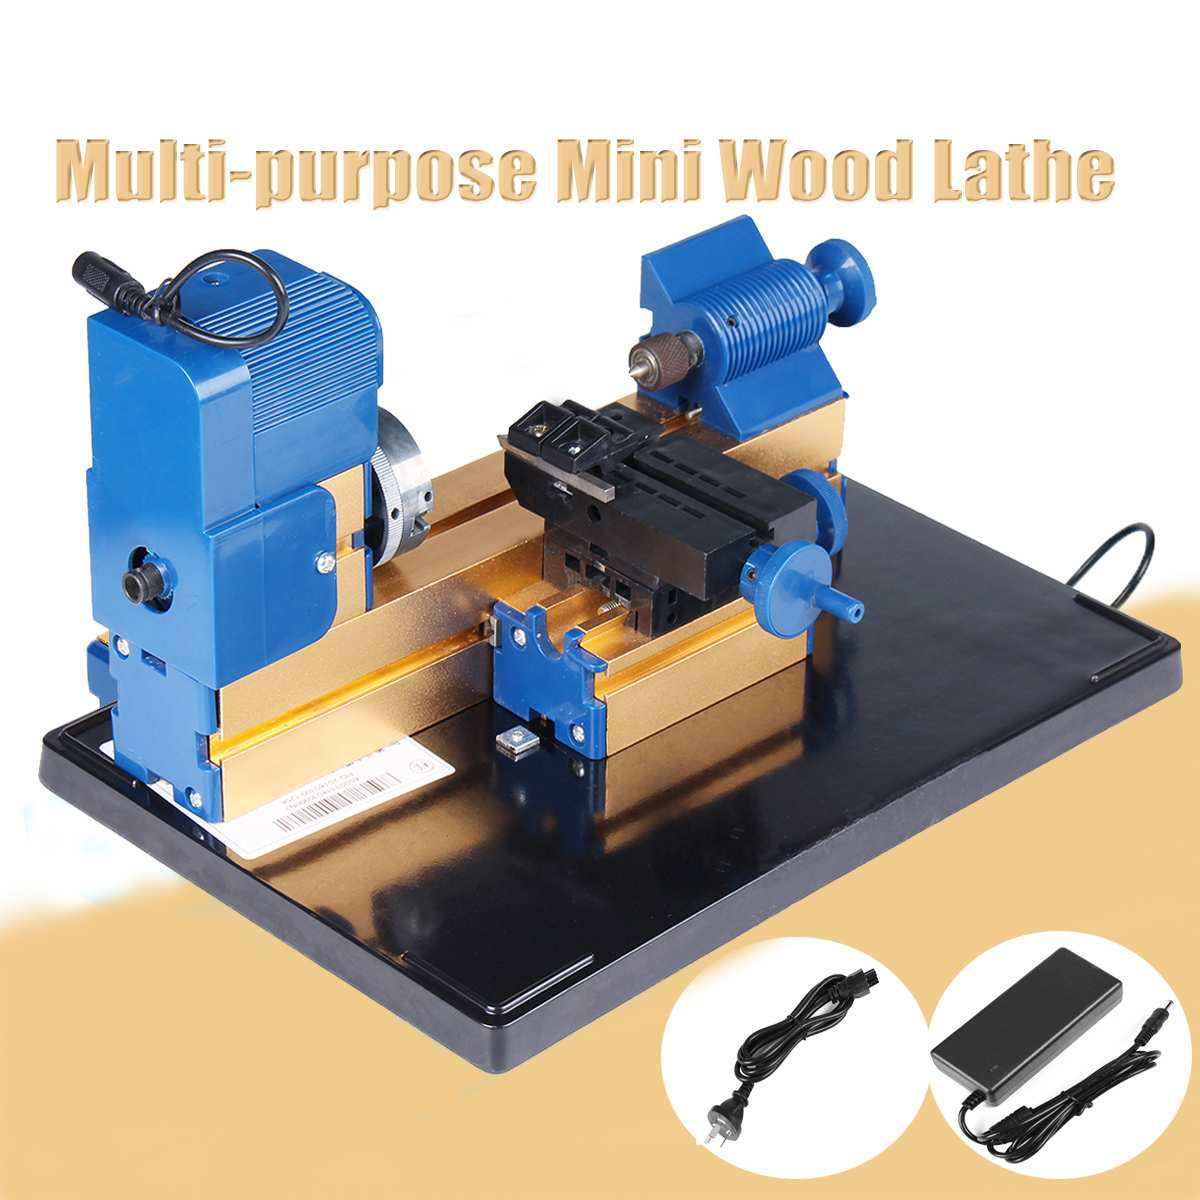 DC 12V 24W 2A Multifunction Mini Wood Lathe Motorized Jig-saw Bead Grinder Driller Woodworking Turning Cutting Bead Tool